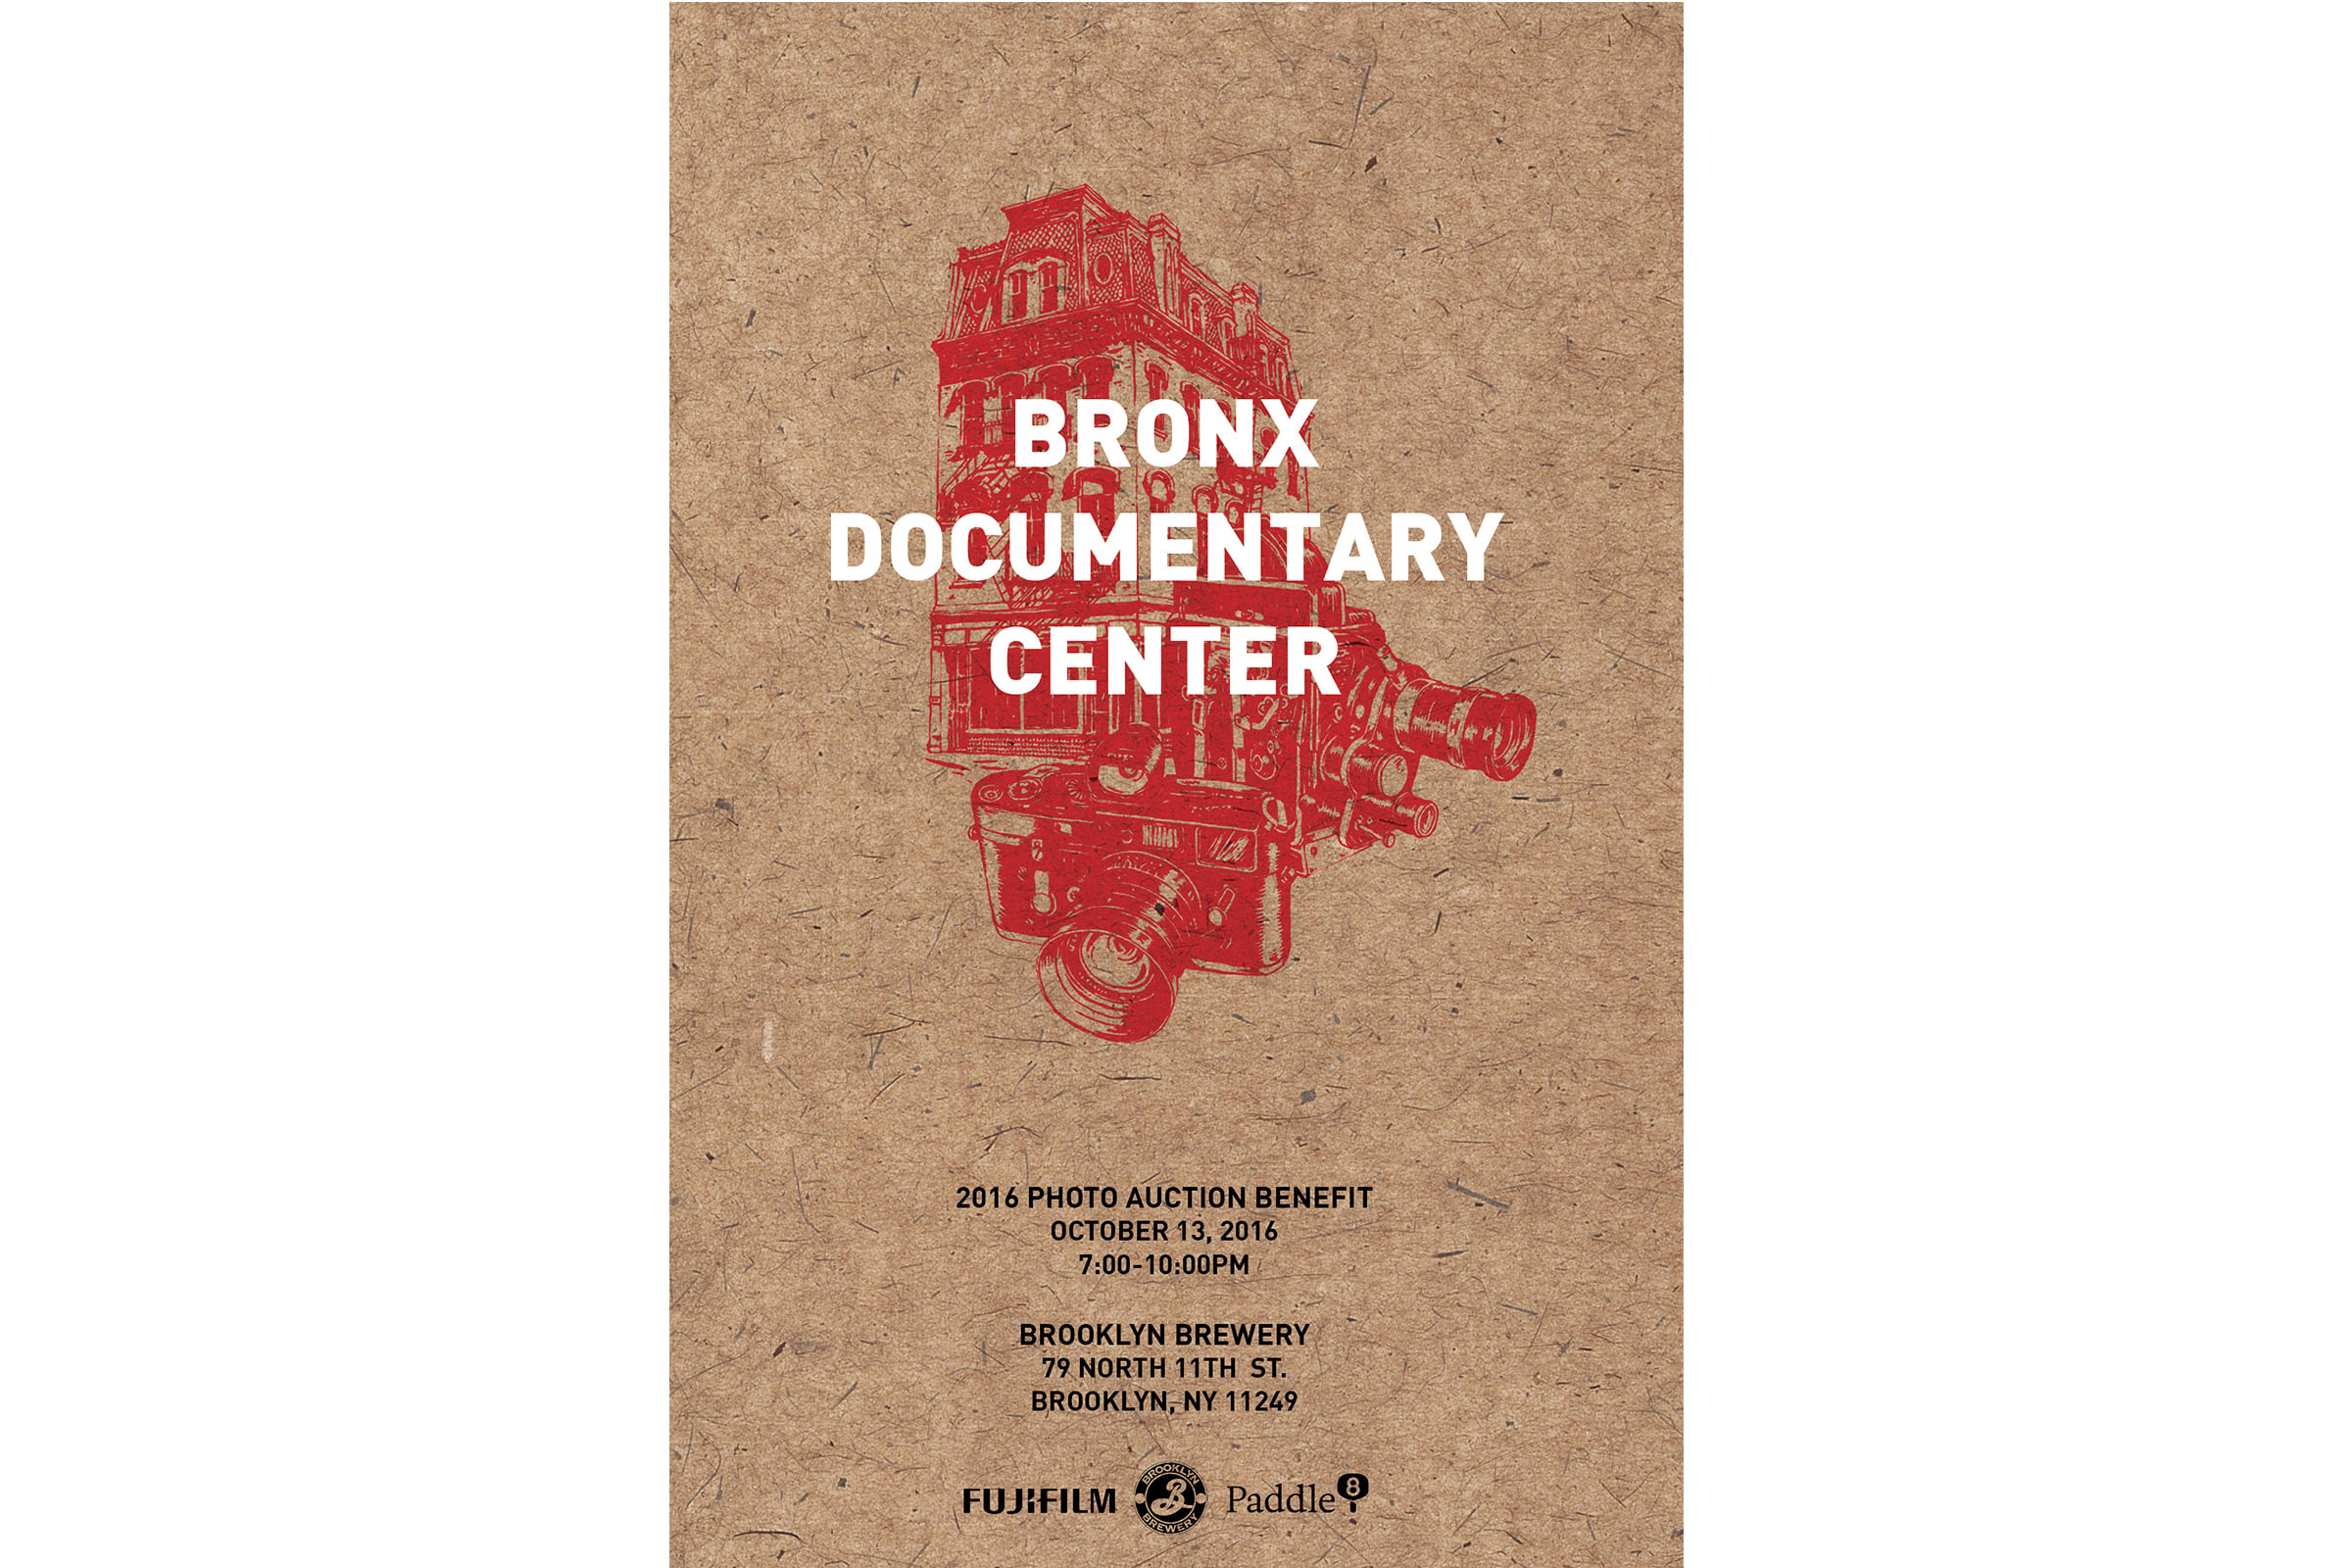 Bronx Documentary Center